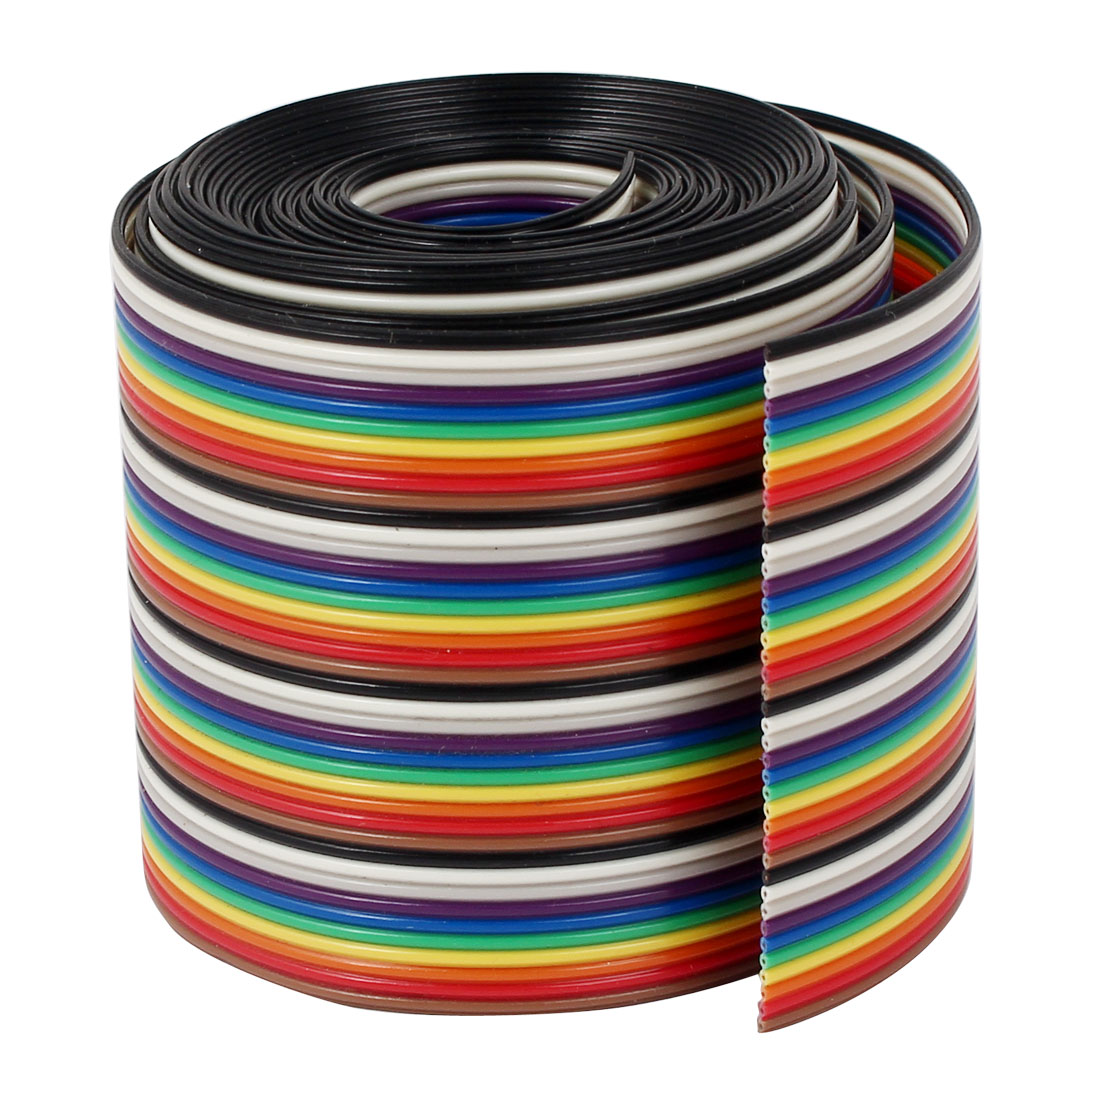 2 Meter 6.6ft 40 Way 40 pin Flat Rainbow Ribbon IDC Cable Wire Rainbow Cable jet triple 2 flat pin sockets power strip yellow 2 flat pin plug ac 110 220v 48cm cable page 2 page 1 page 5